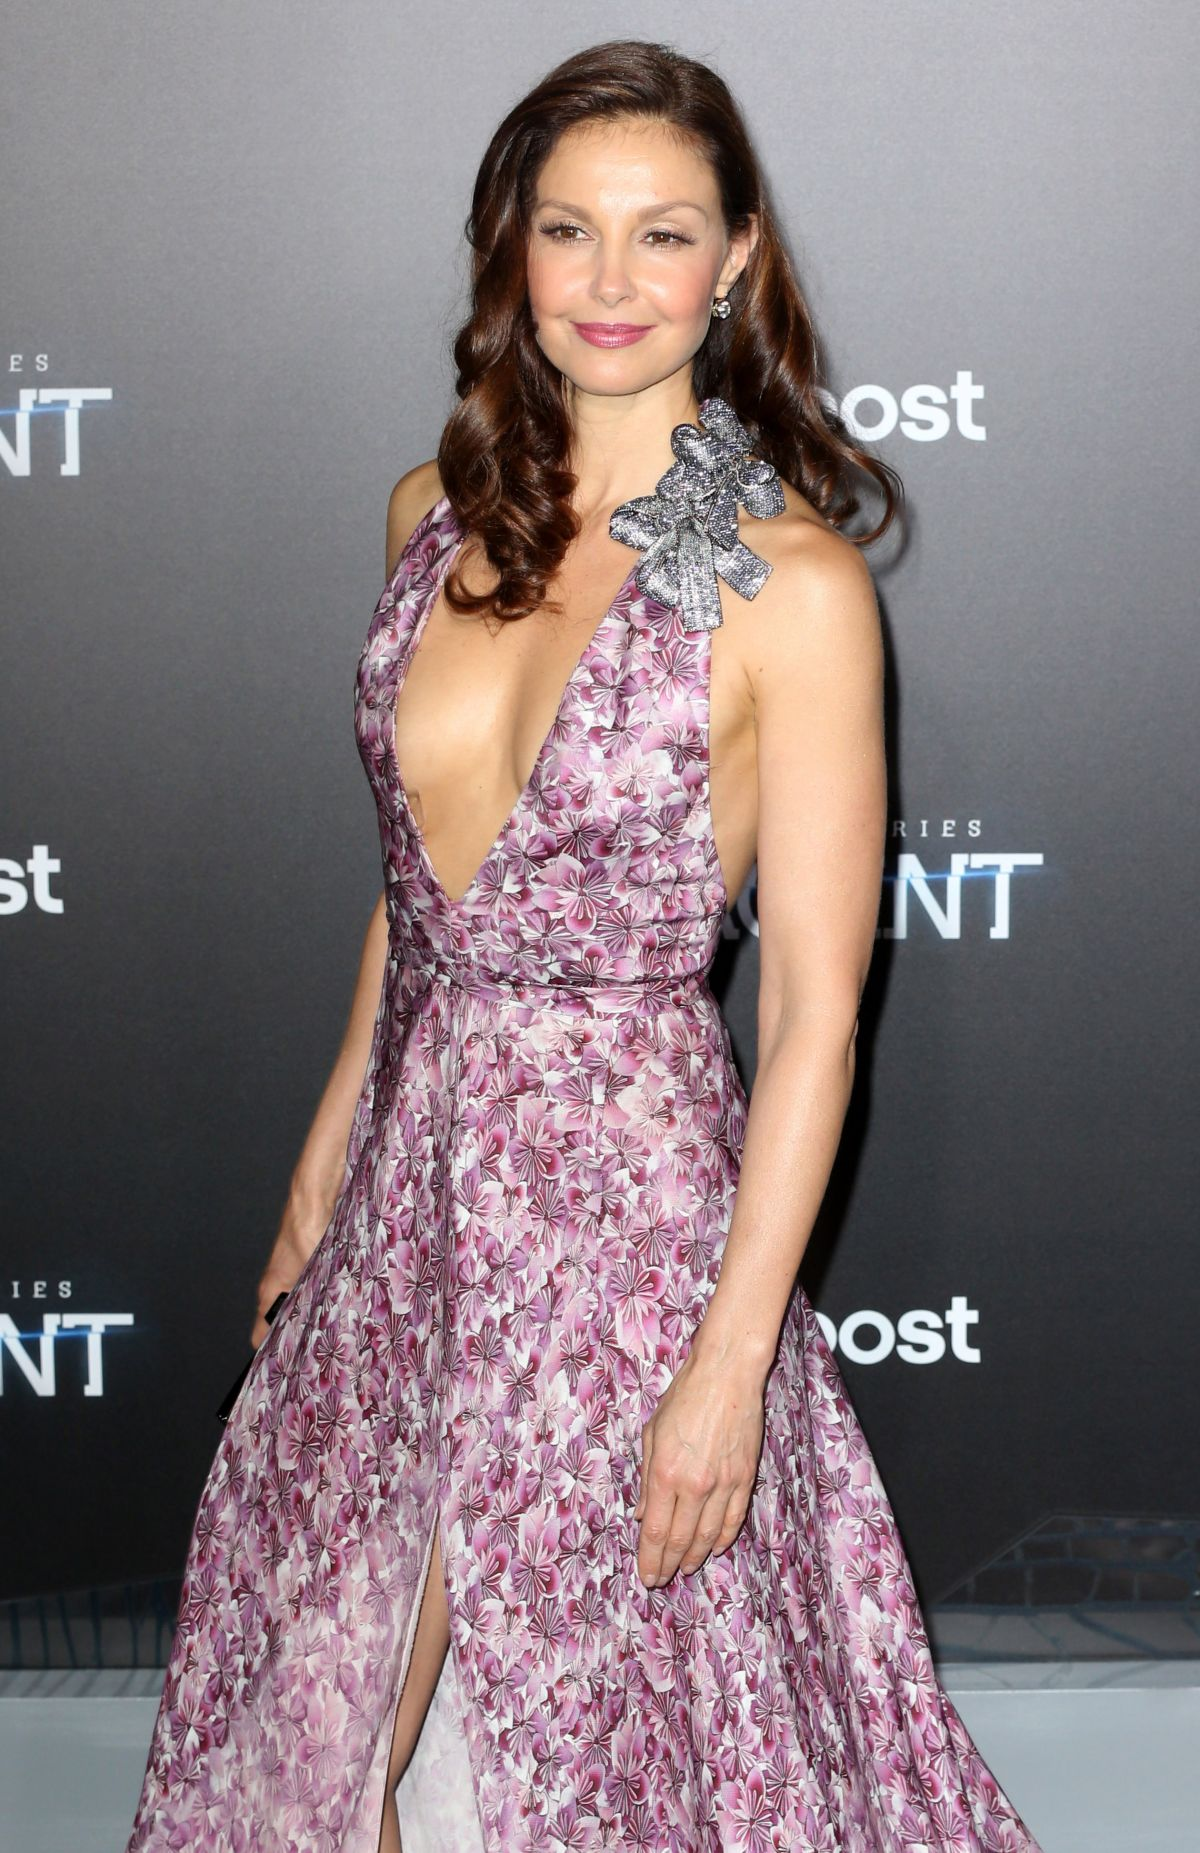 ASHLEY JUDD at Insurgent premiere in New York - HawtCelebs